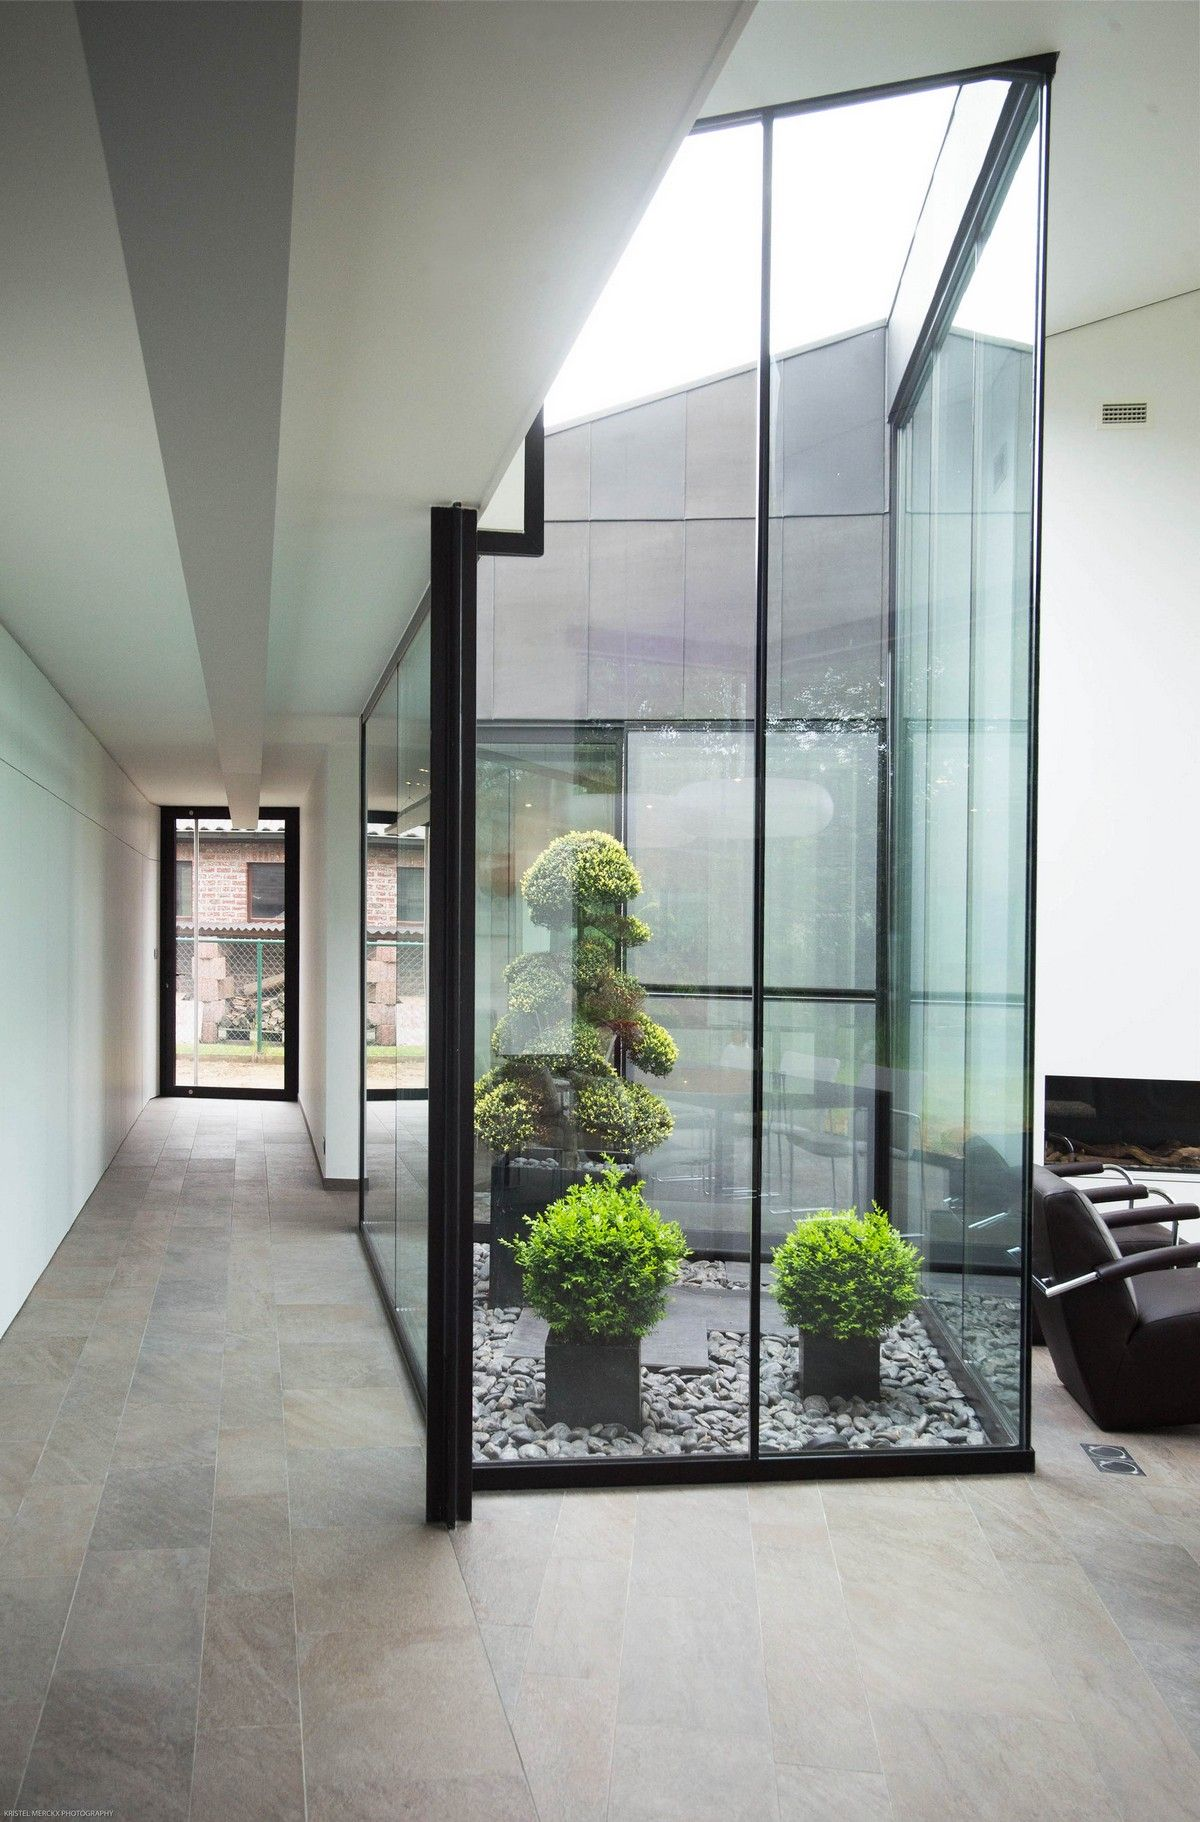 Adapted To The Needs Of An Elderly Couple Family House In Oud Heverlee Freshome Com Patio Interior Indoor Courtyard Family House